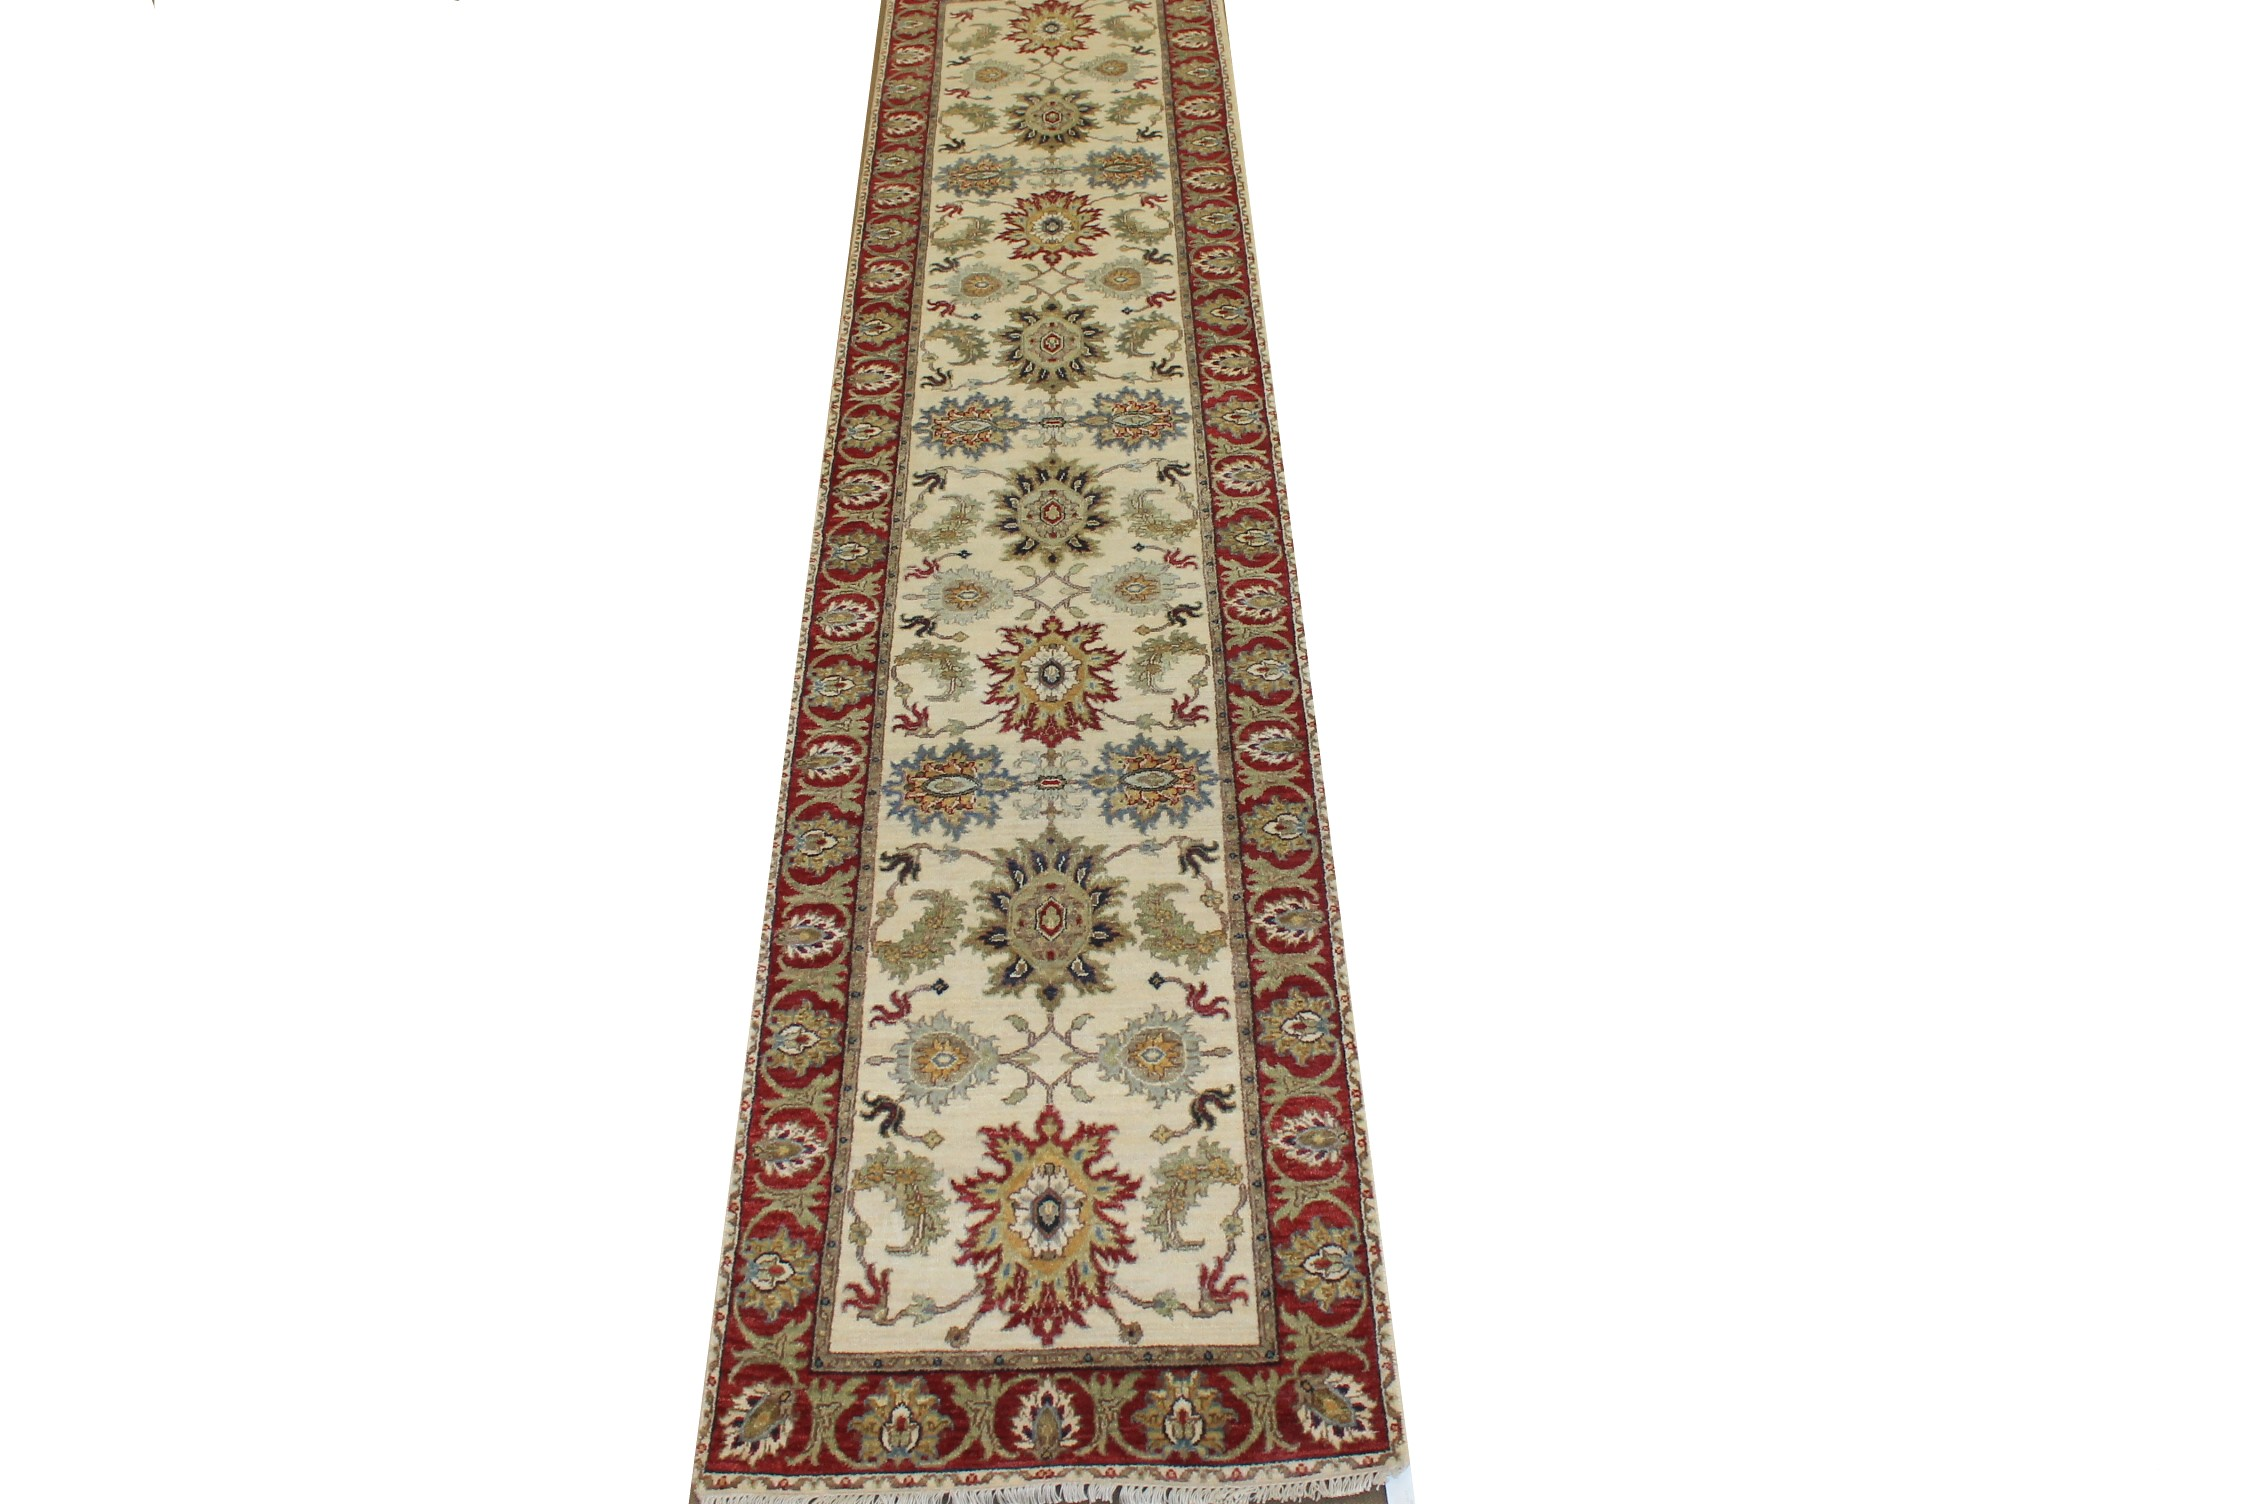 12 ft. Runner Traditional Hand Knotted Wool Area Rug - MR024779